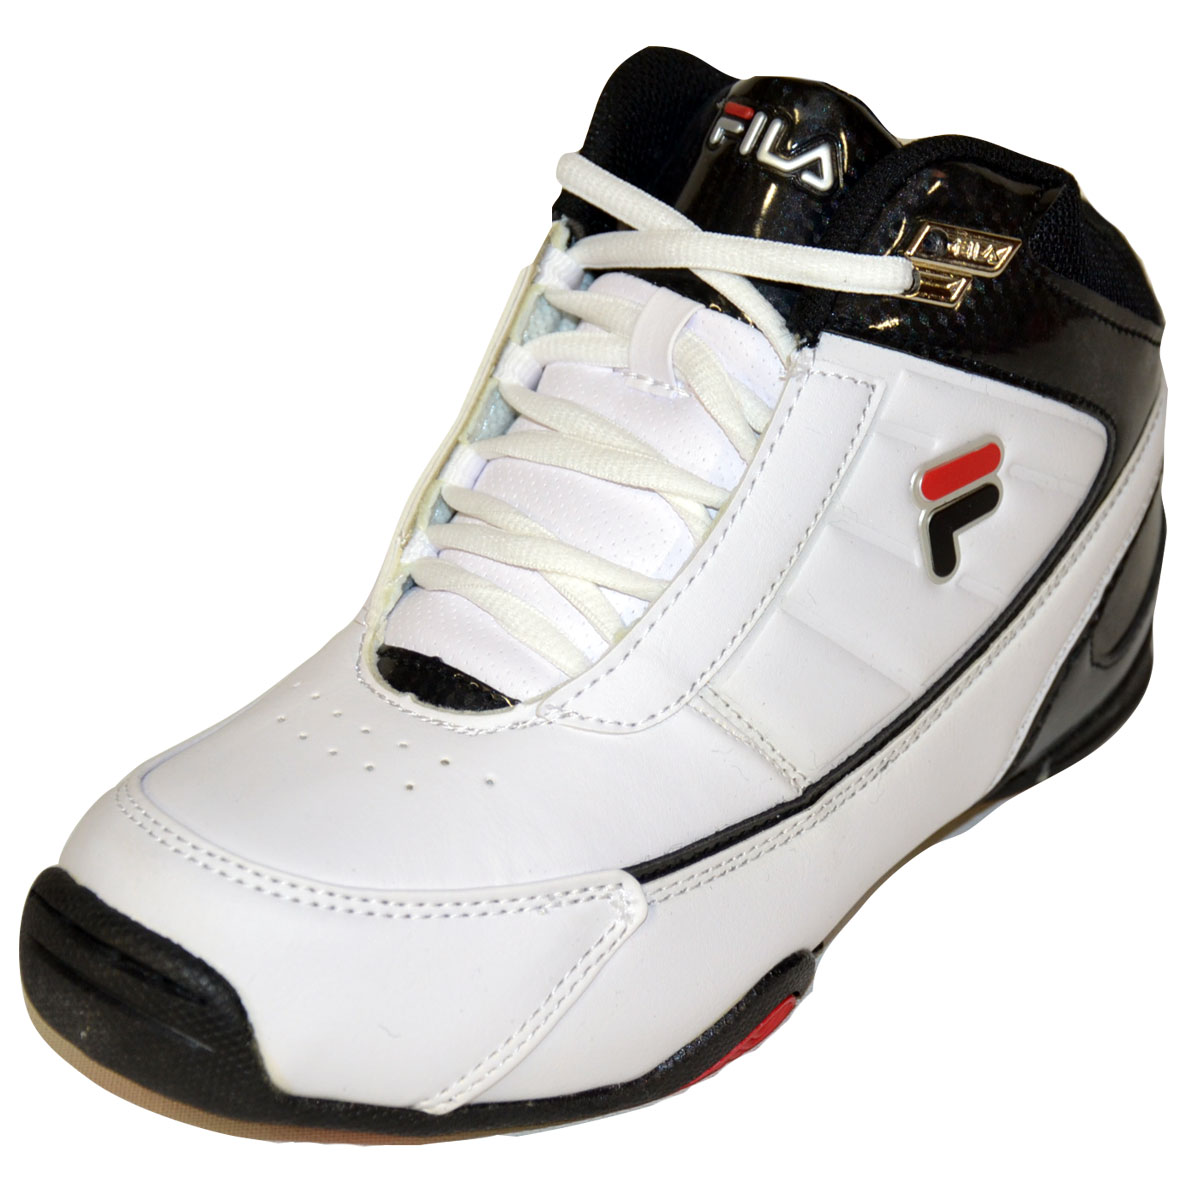 Fila Change The Game Big Kids Youth Basketball Shoes